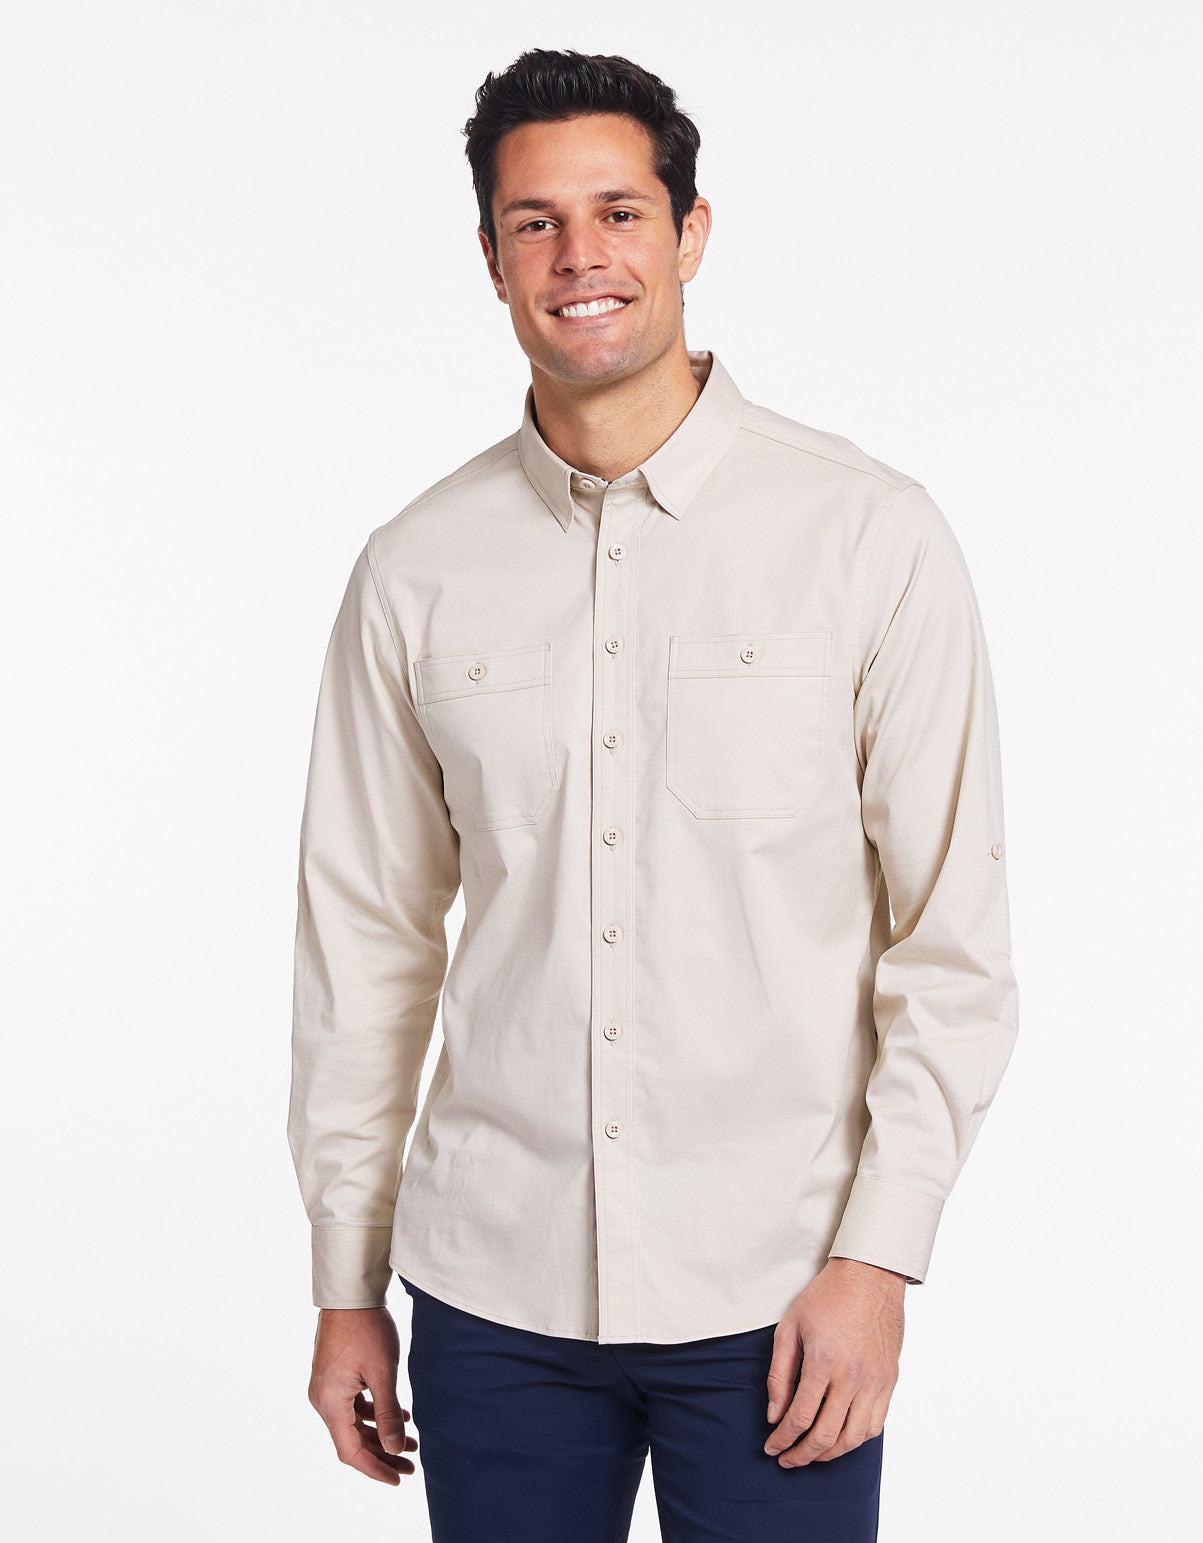 Solbari Sun Protection UPF 50+ Outback Shirt in Beige Technicool Collection